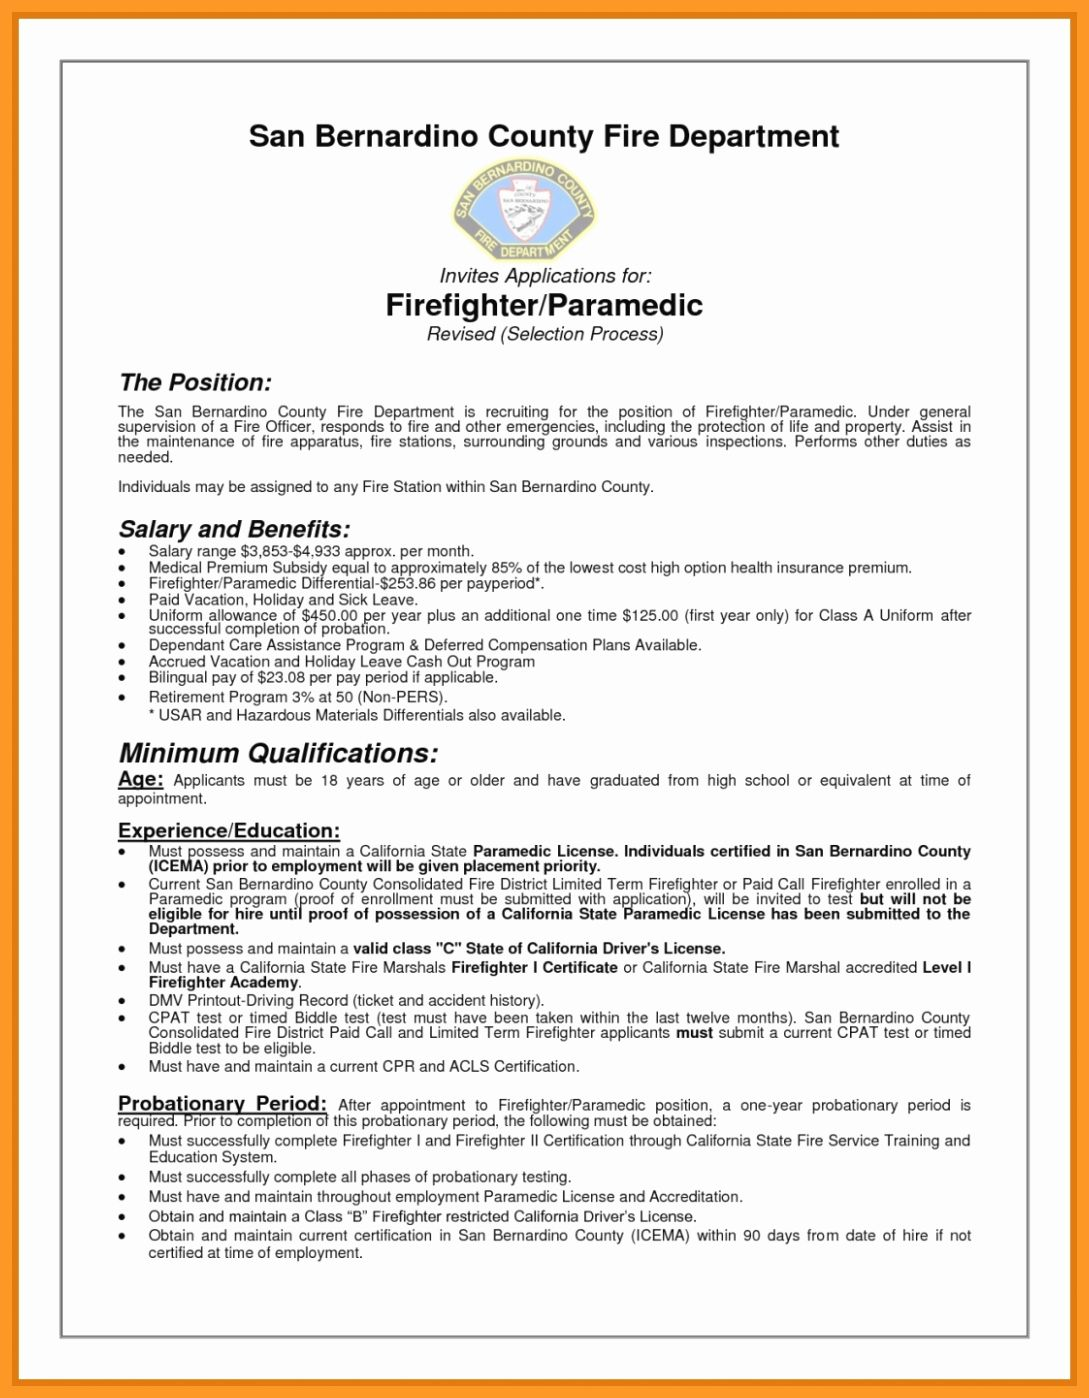 23 Firefighter Job Description Resume in 2020 (With images